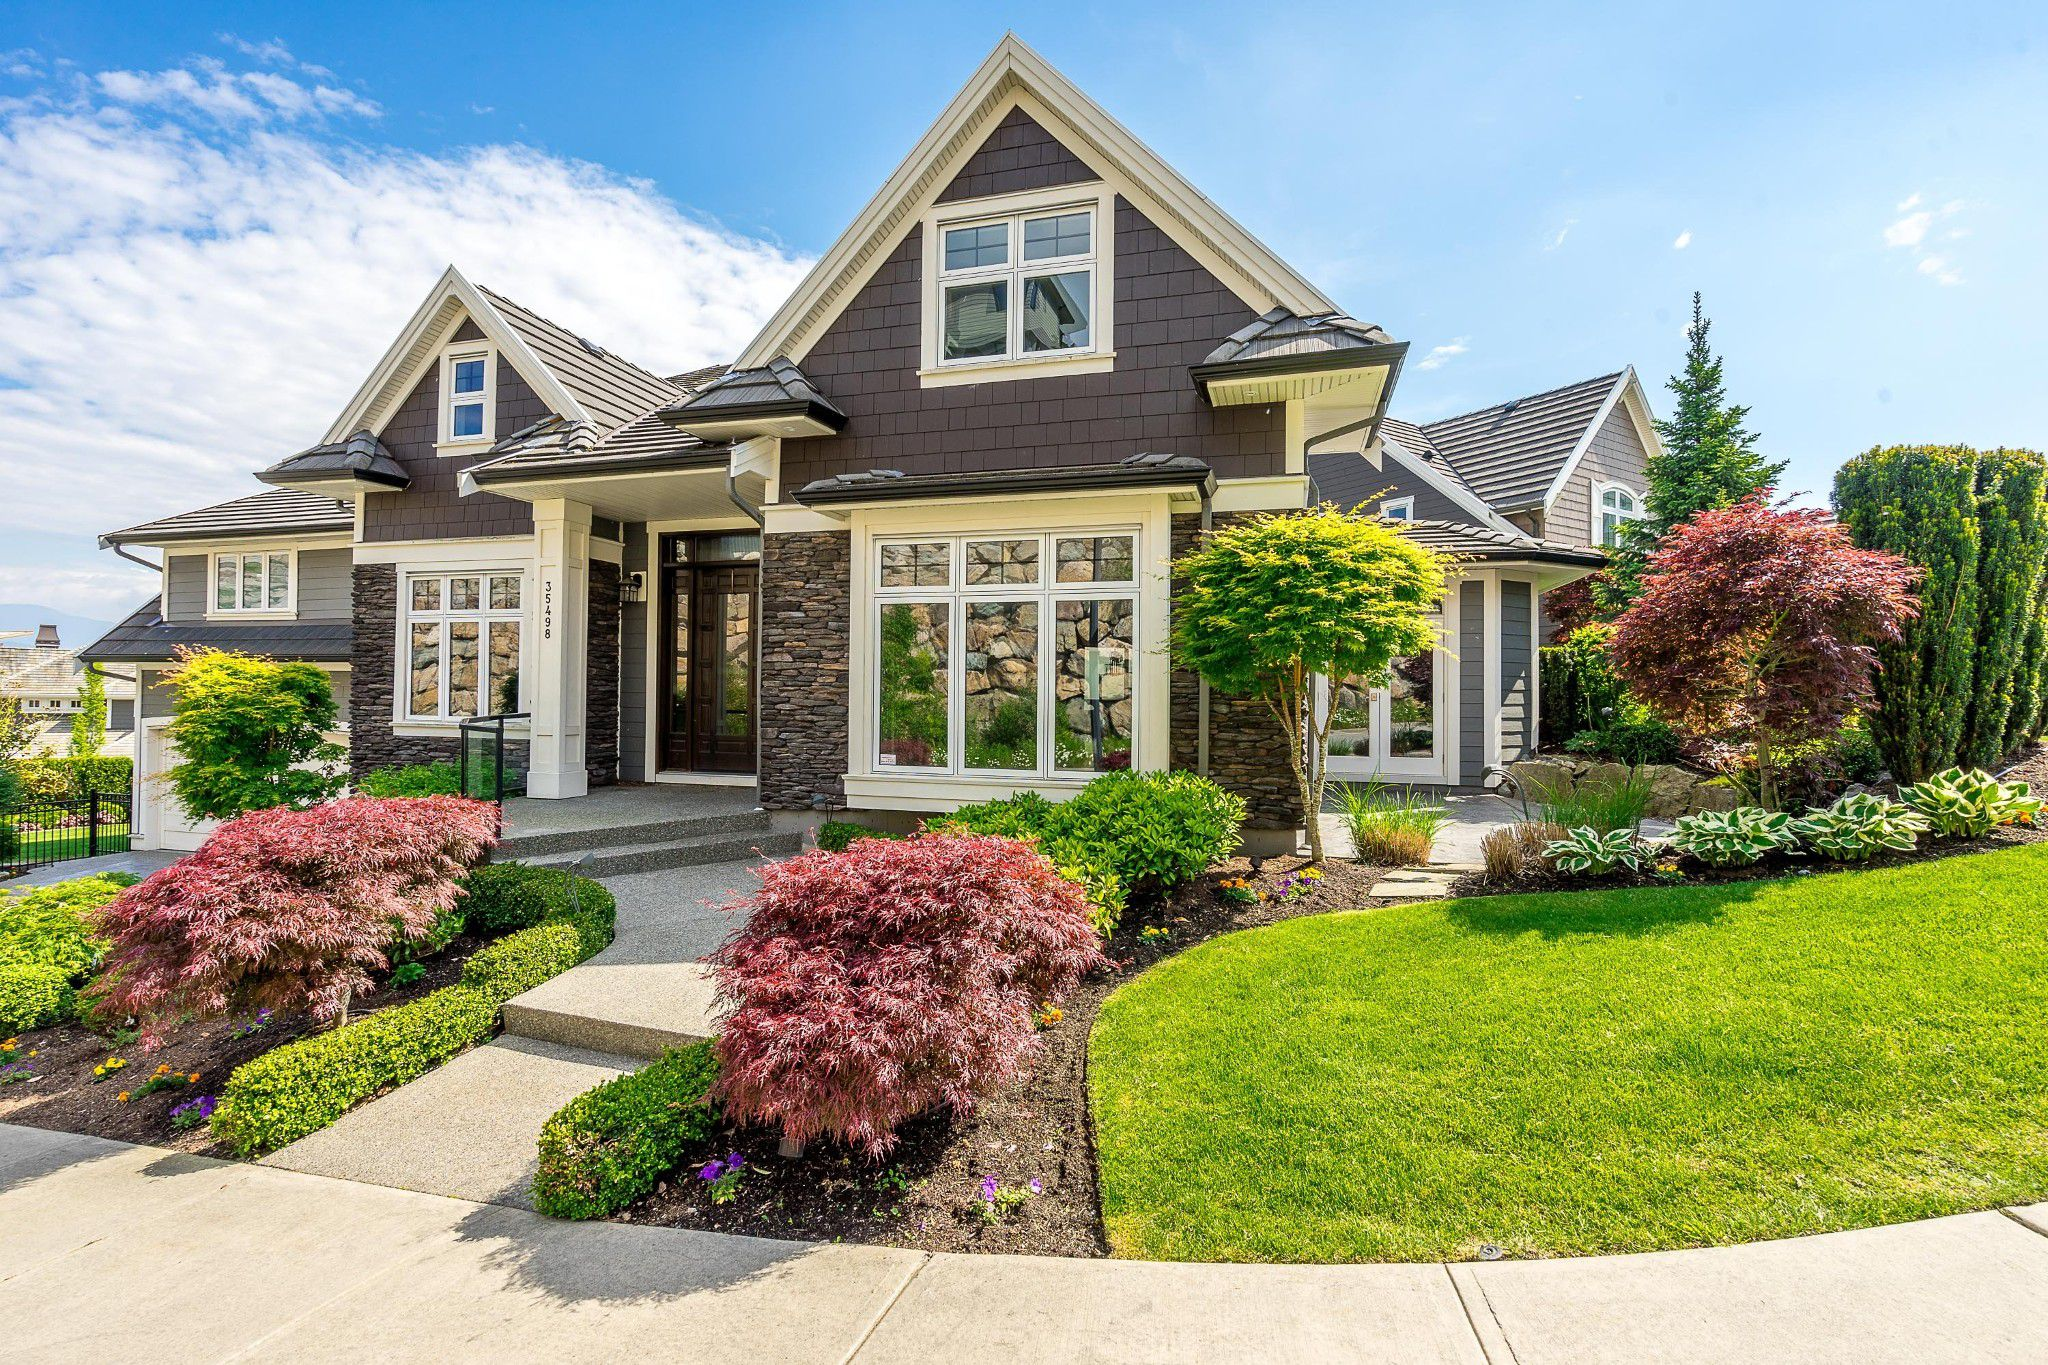 """Main Photo: 35498 MAHOGANY Drive in Abbotsford: Abbotsford East House for sale in """"EAGLE MOUNTAIN"""" : MLS®# R2372658"""